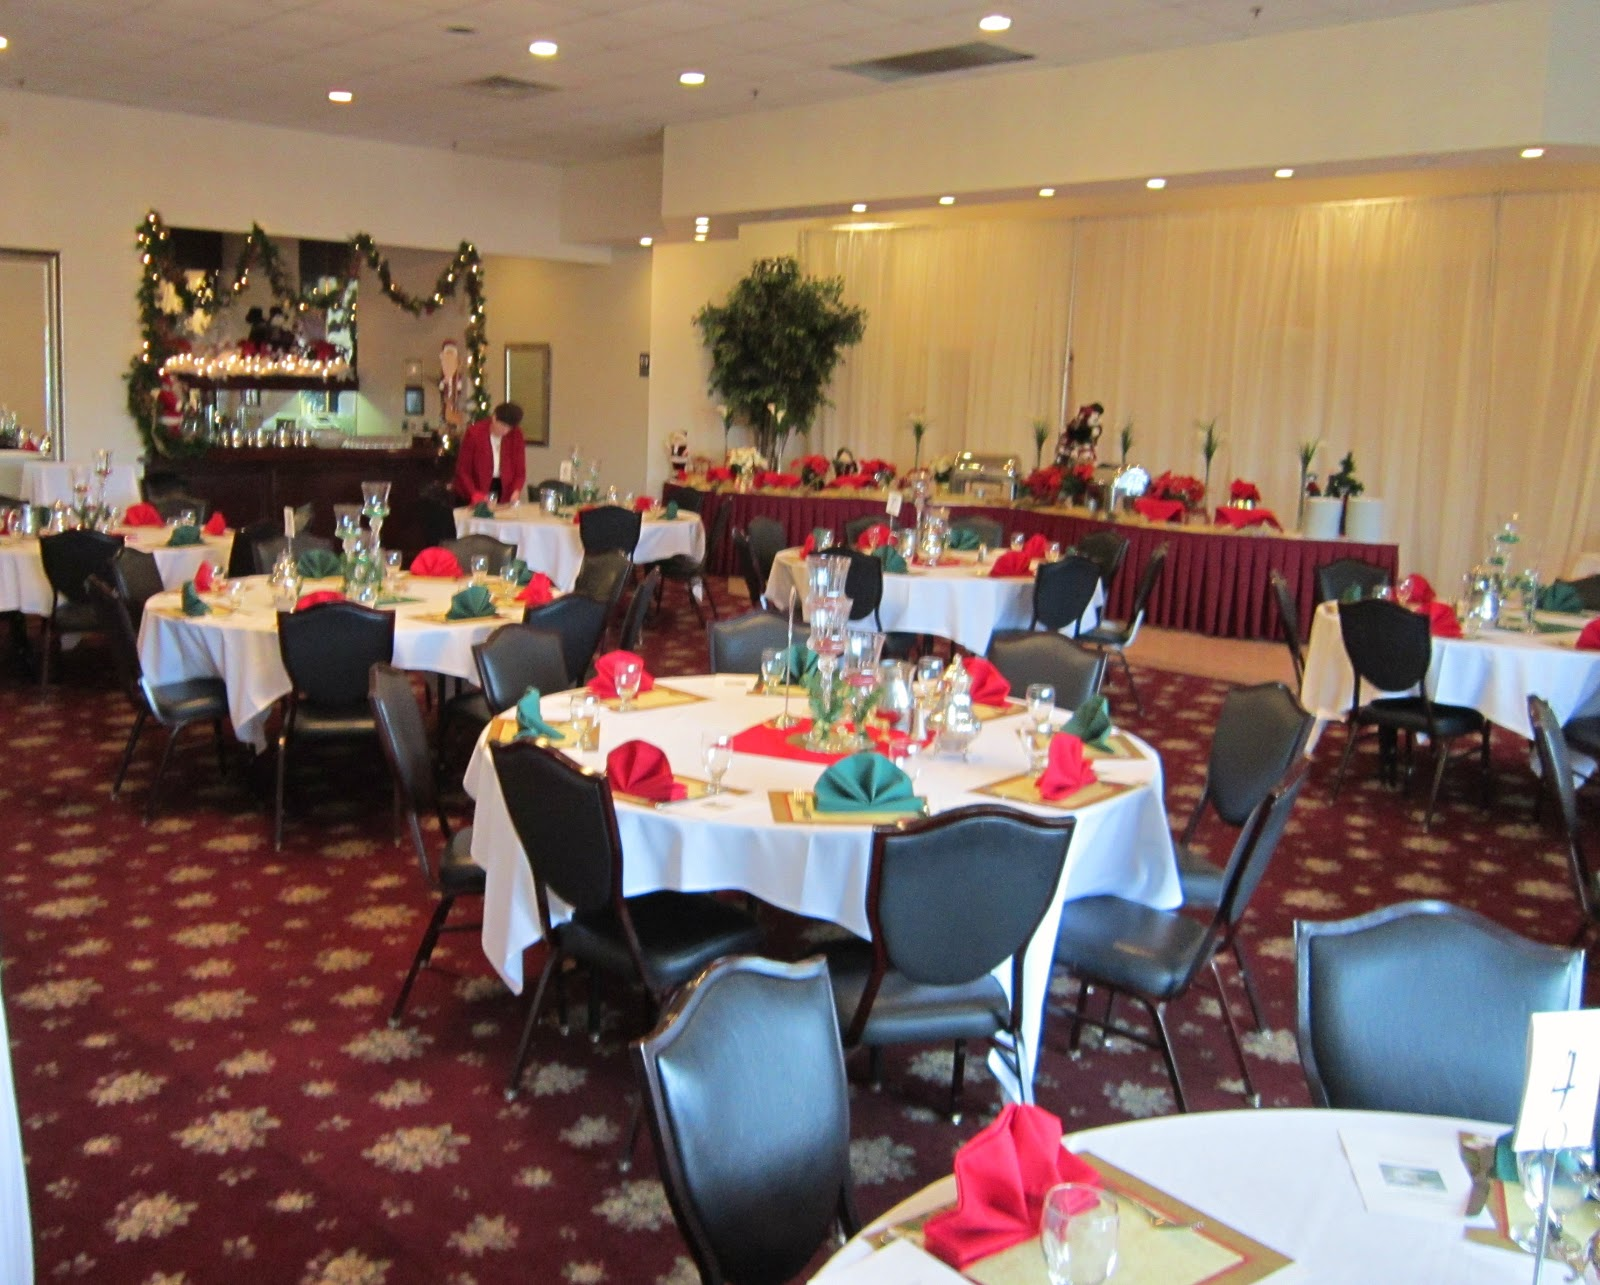 Church Banquet Tables And Chairs Swivel Chair Jiji Relevant Tea Leaf An Angel Themed Christmas